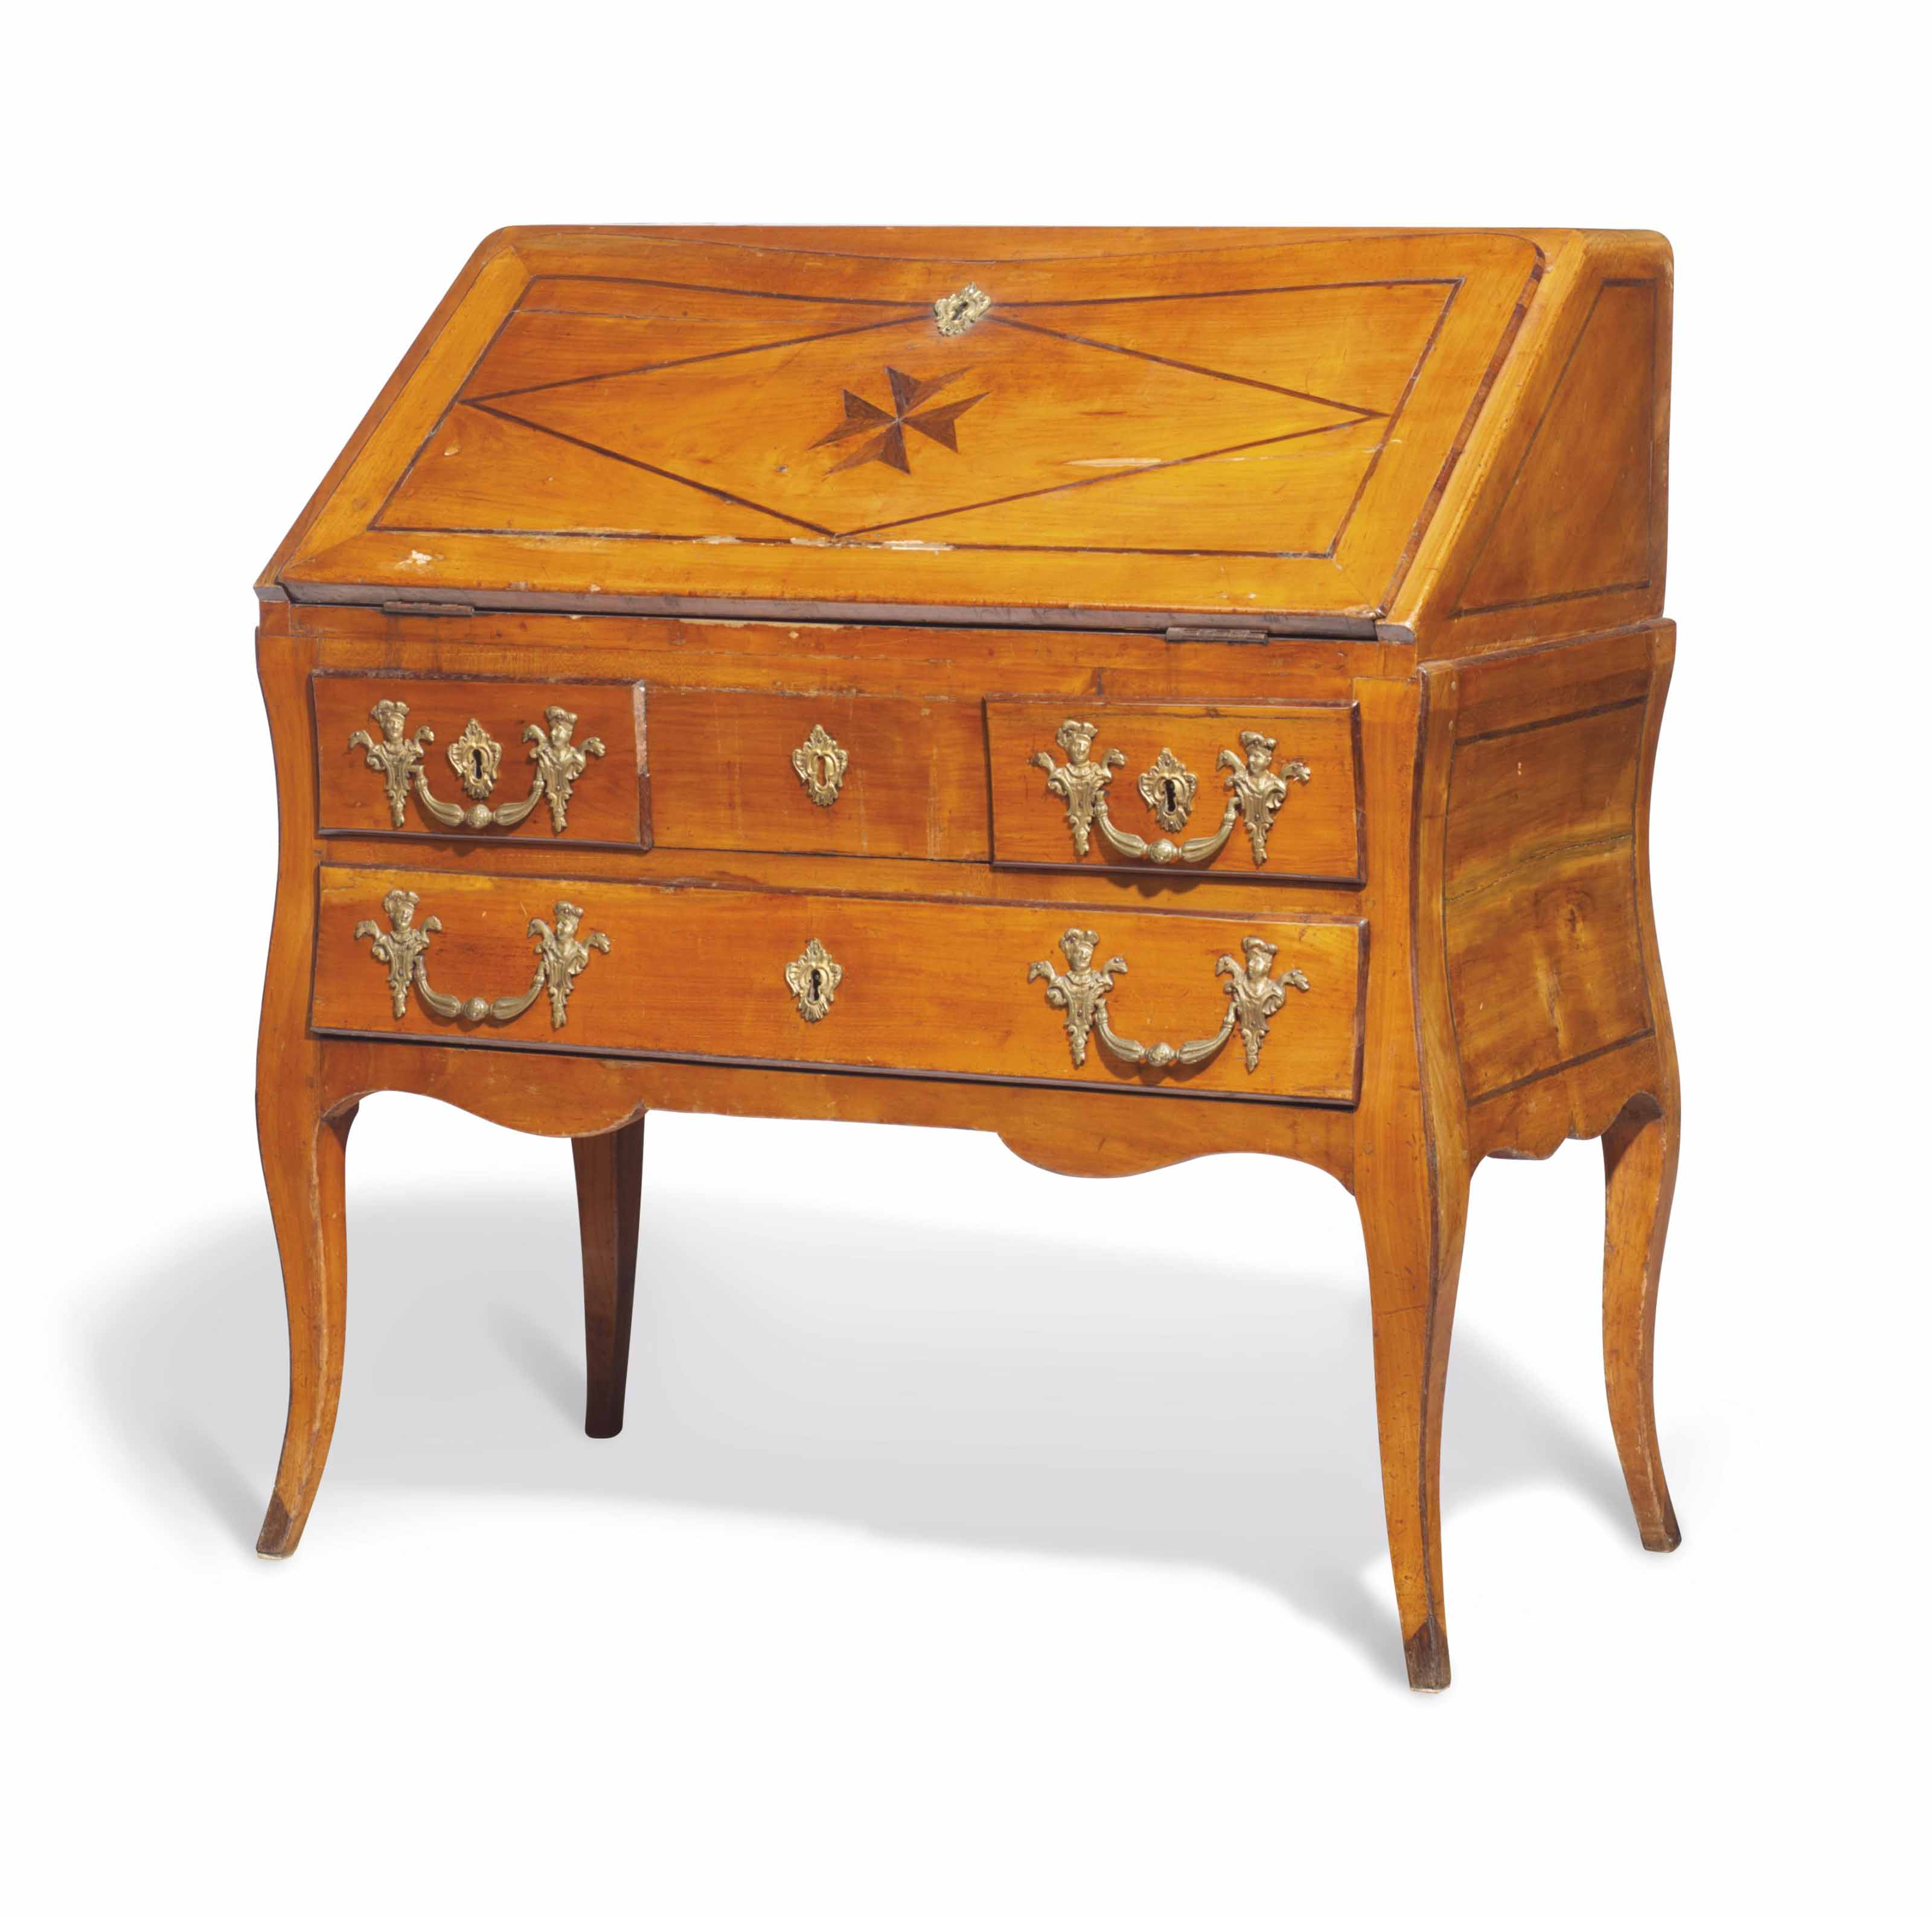 A PROVINCIAL LOUIS XV KINGWOOD